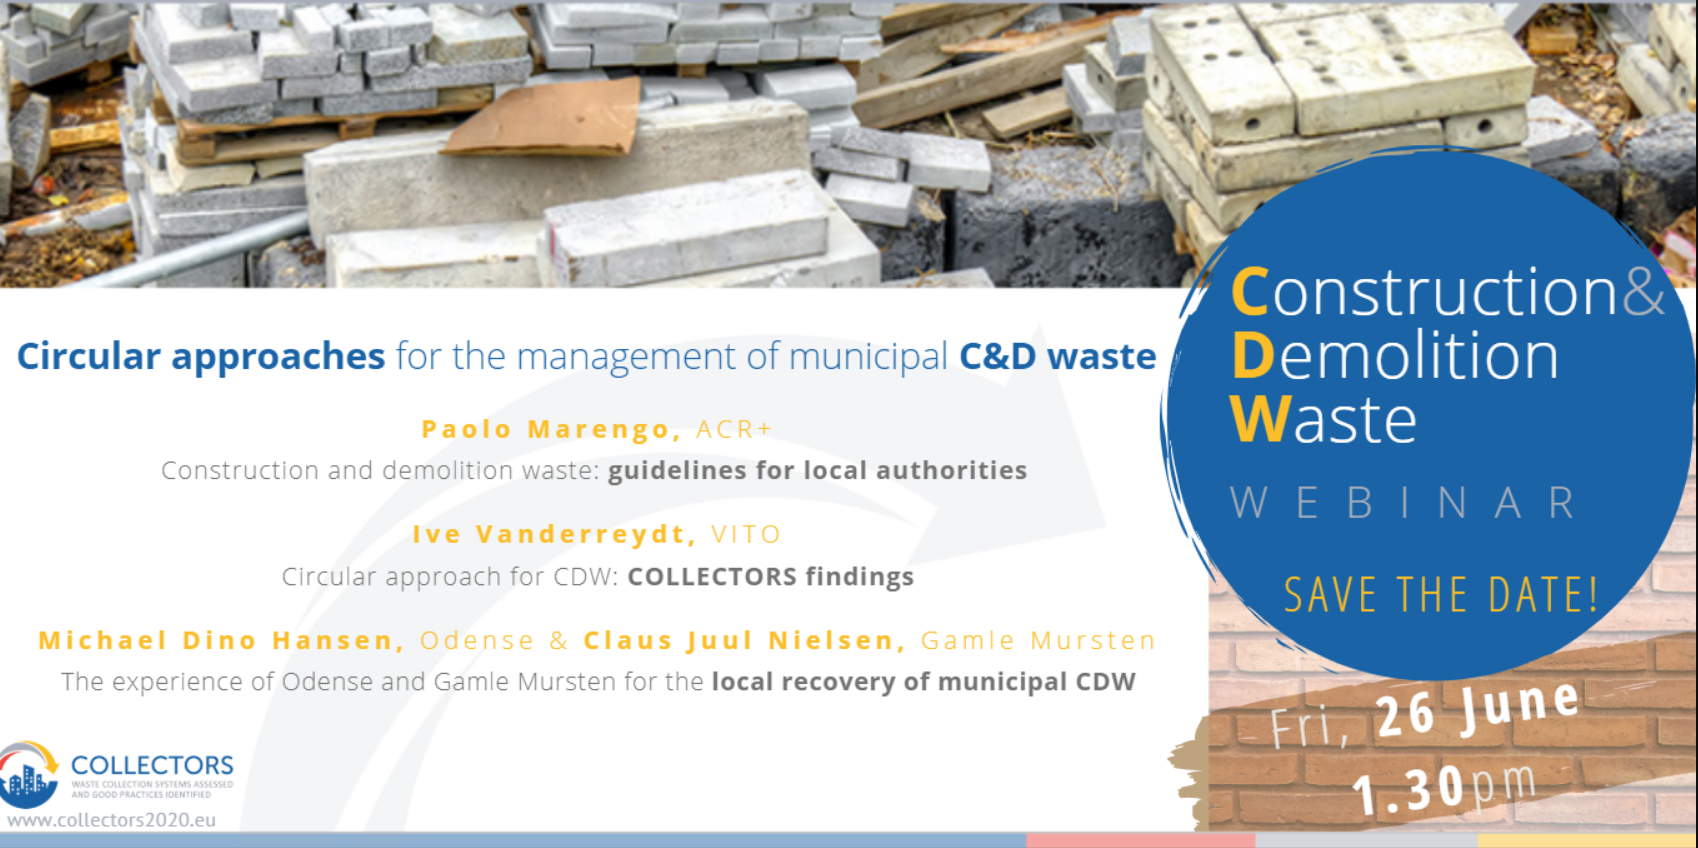 Webinar recording on circular approaches for the management of municipal construction and demolition waste now available